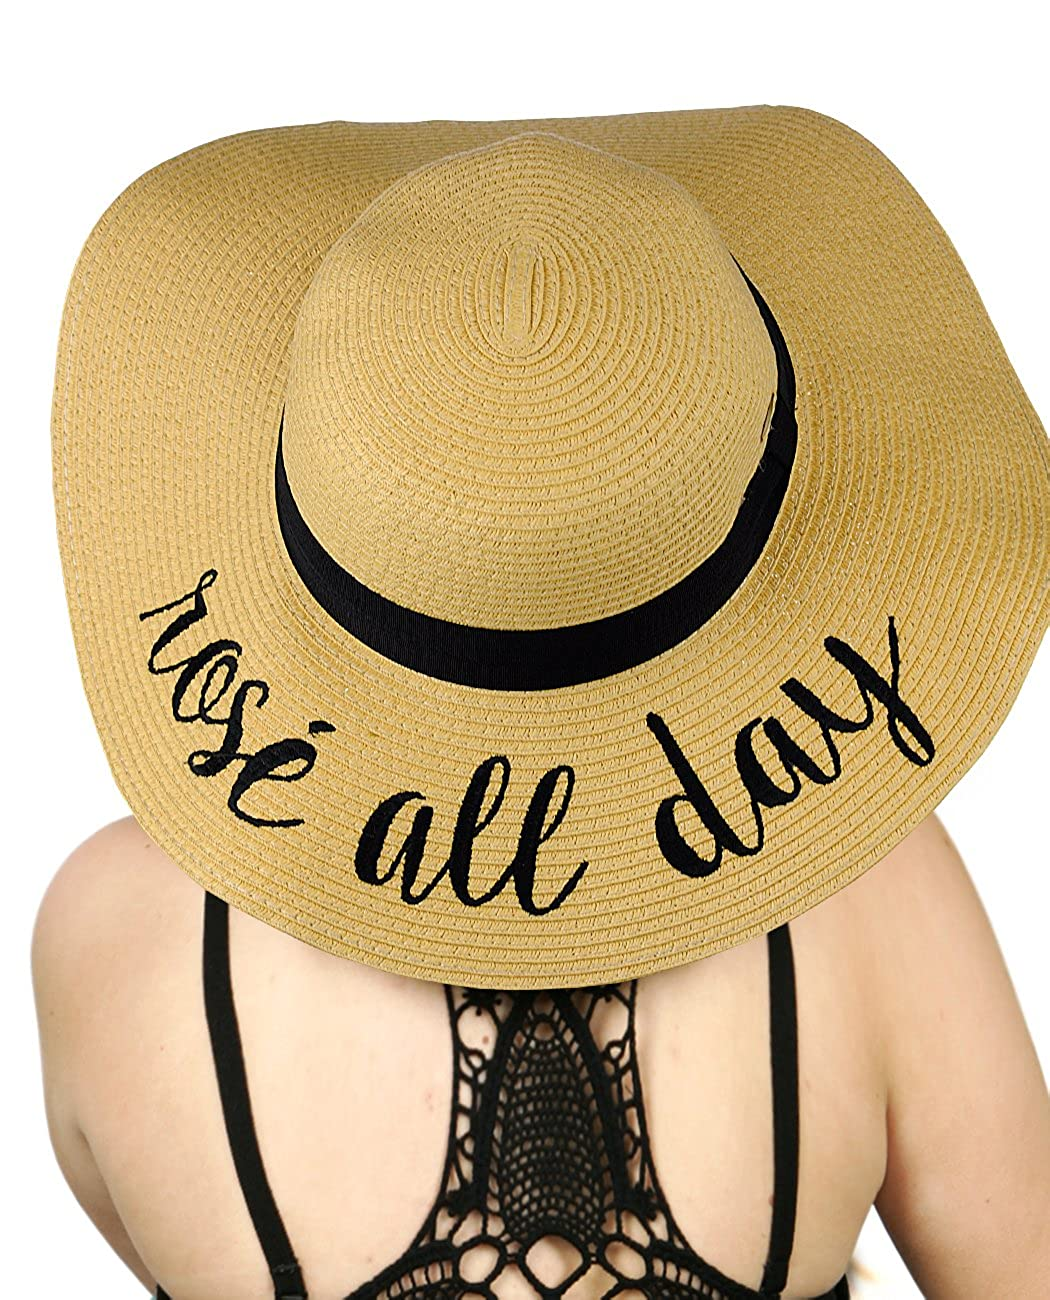 C& C Women's Paper Weaved Crushable Beach Embroidered Quote Floppy Brim Sun Hat, Rosé All Day Rosé All Day C.C ST2017-ROSE ALL DAY